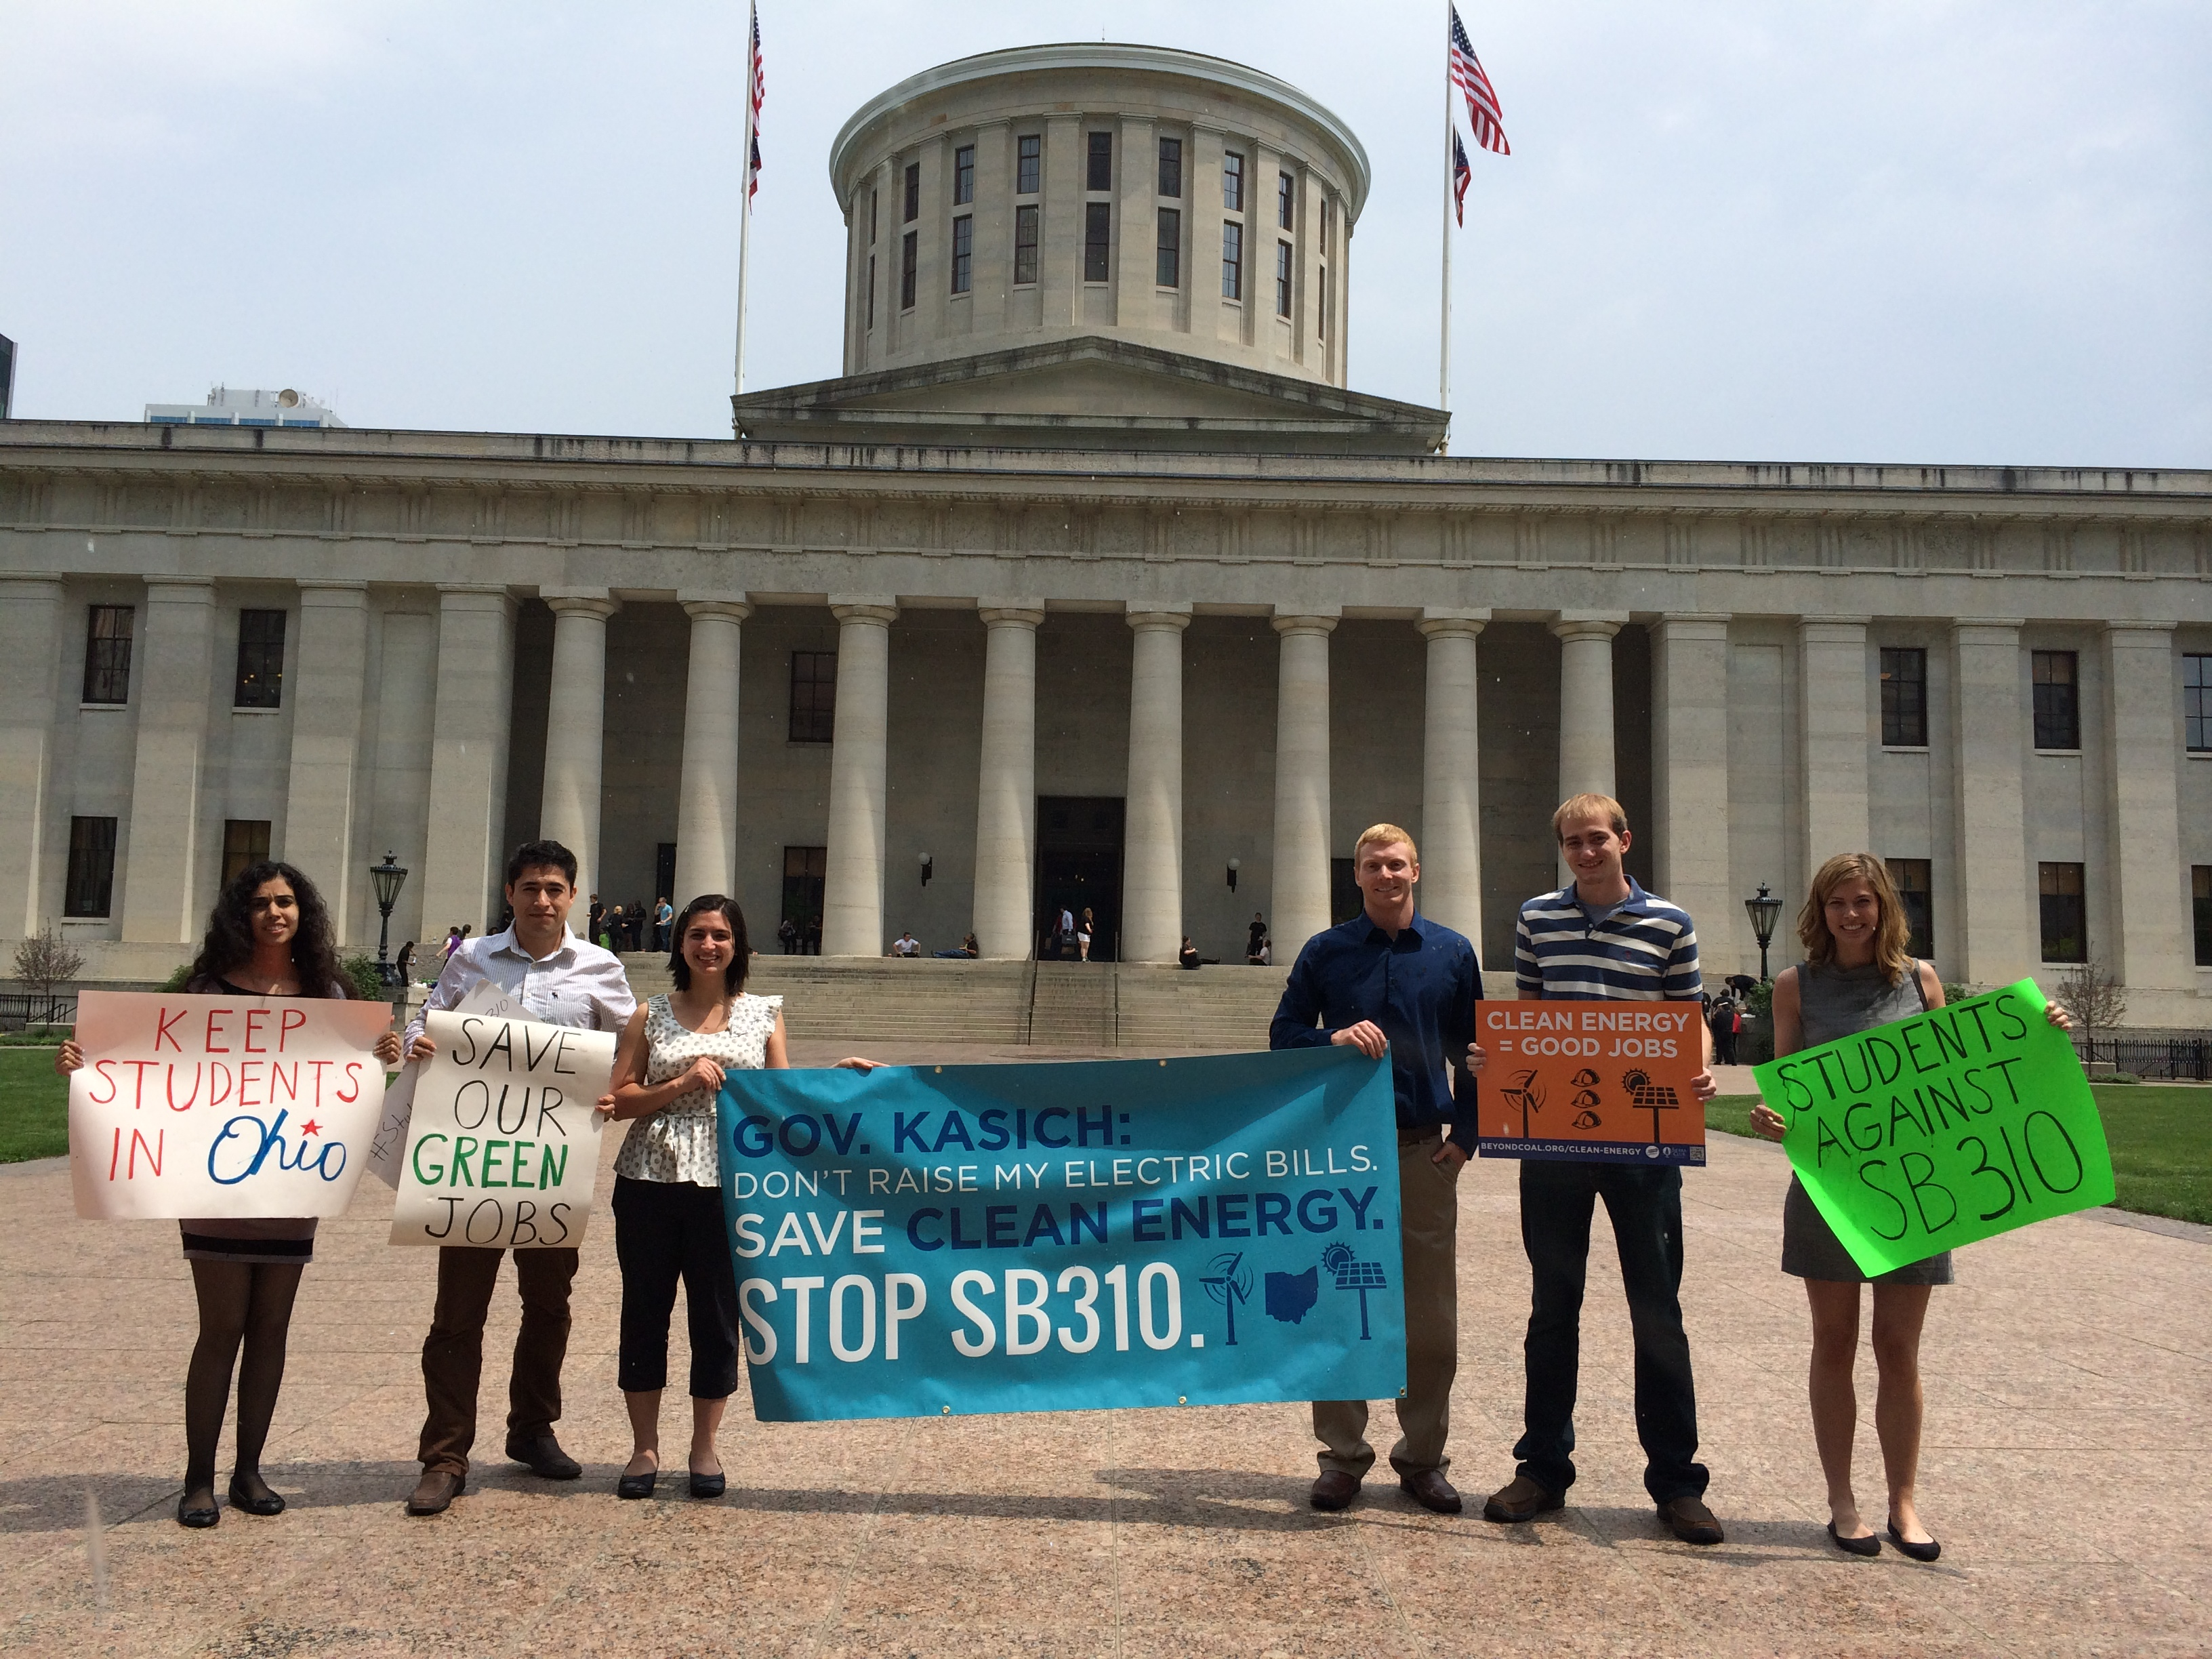 Ohioans for clean energy